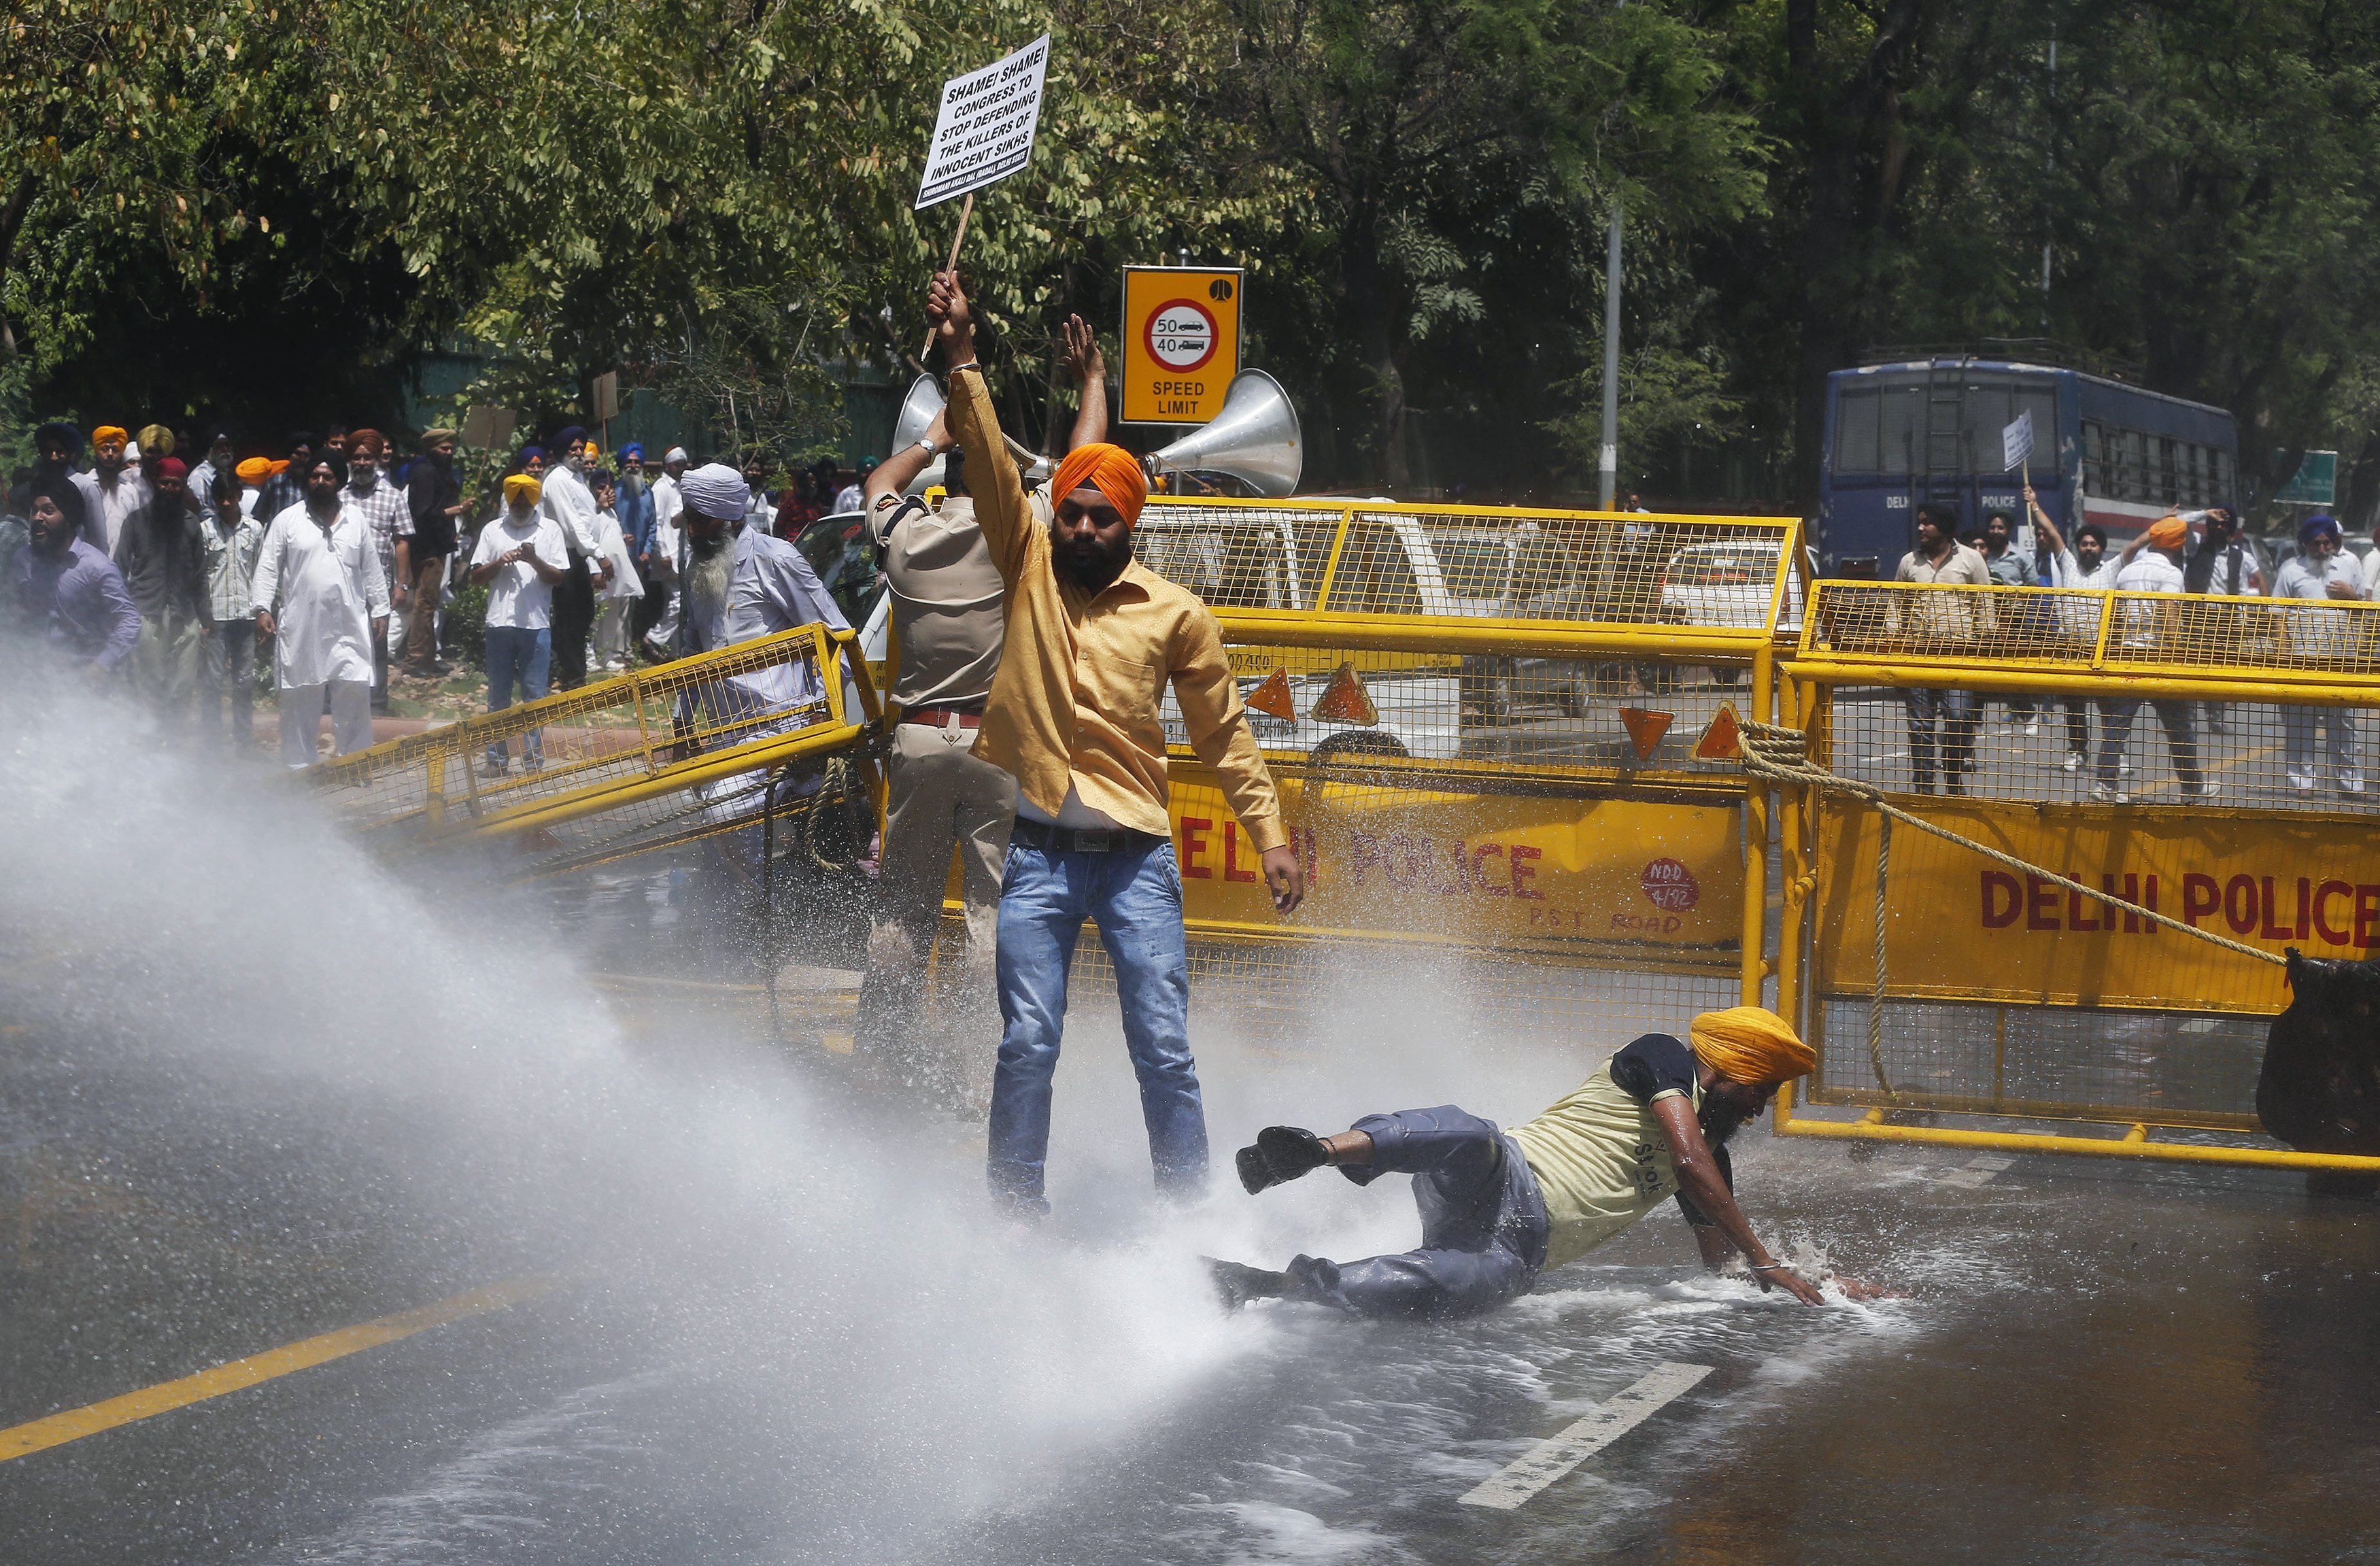 Police use a water cannon to disperse Sikh protesters during a demonstration in front of India's ruling Congress Party headquarters in New Delhi on April 21, 2014